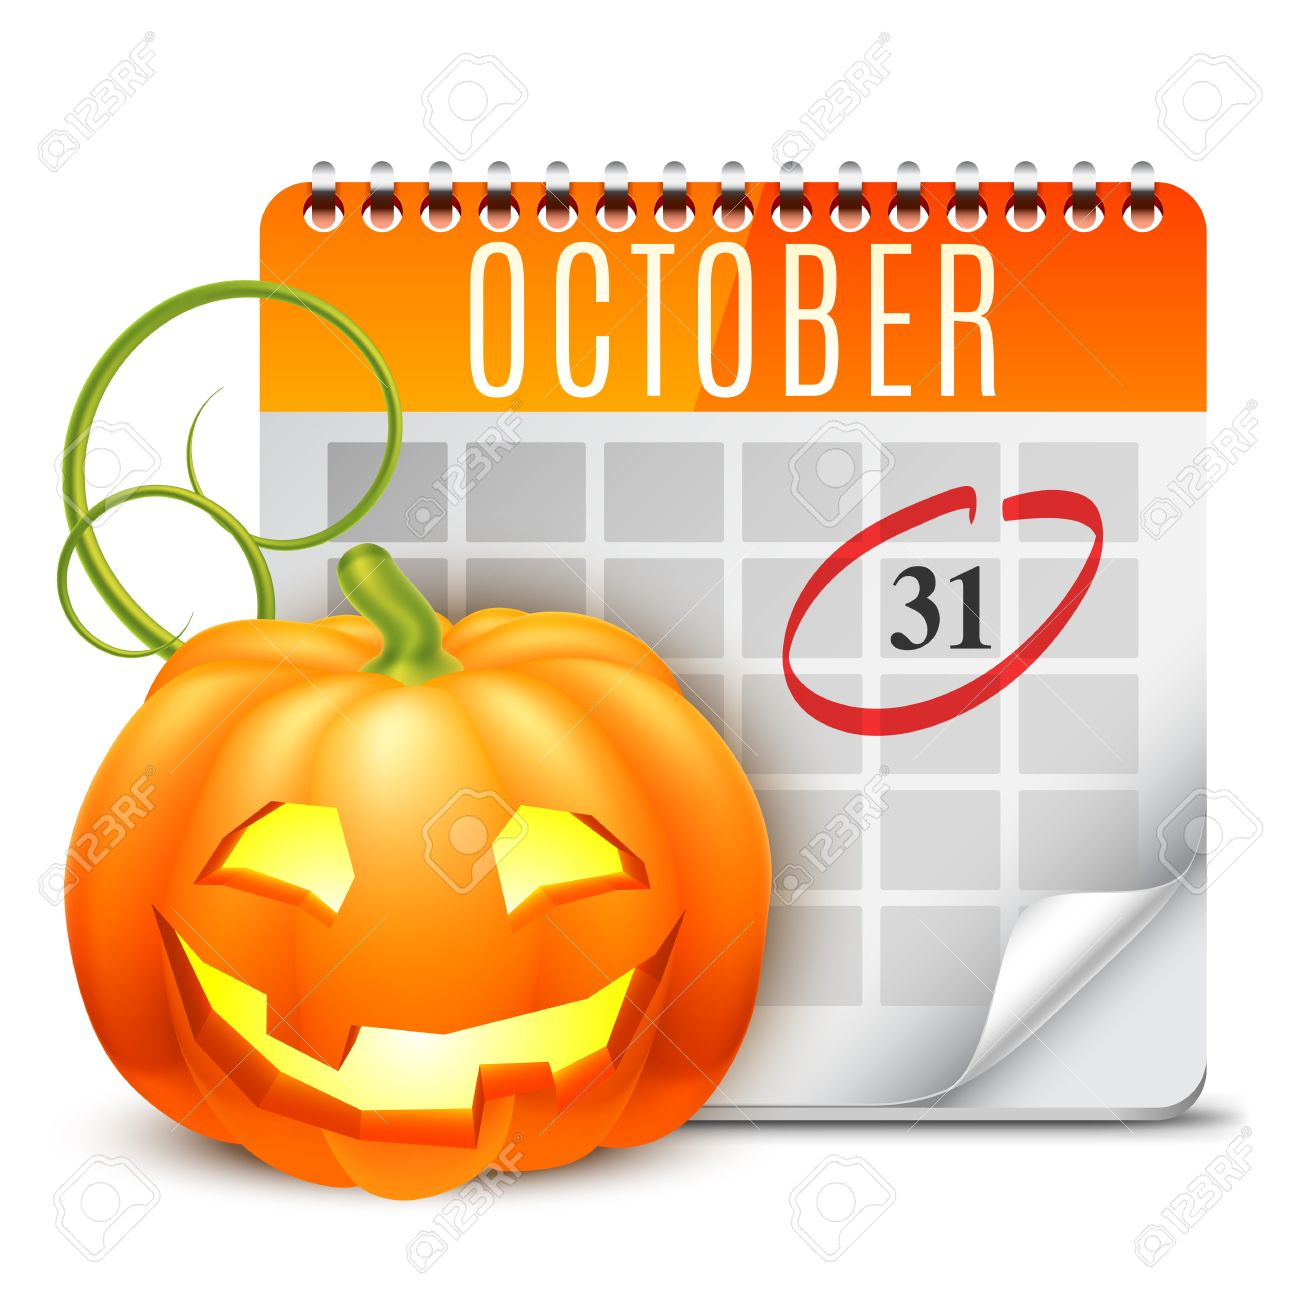 Halloween Calendar With October 31 Date And Pumpkin Royalty Free.